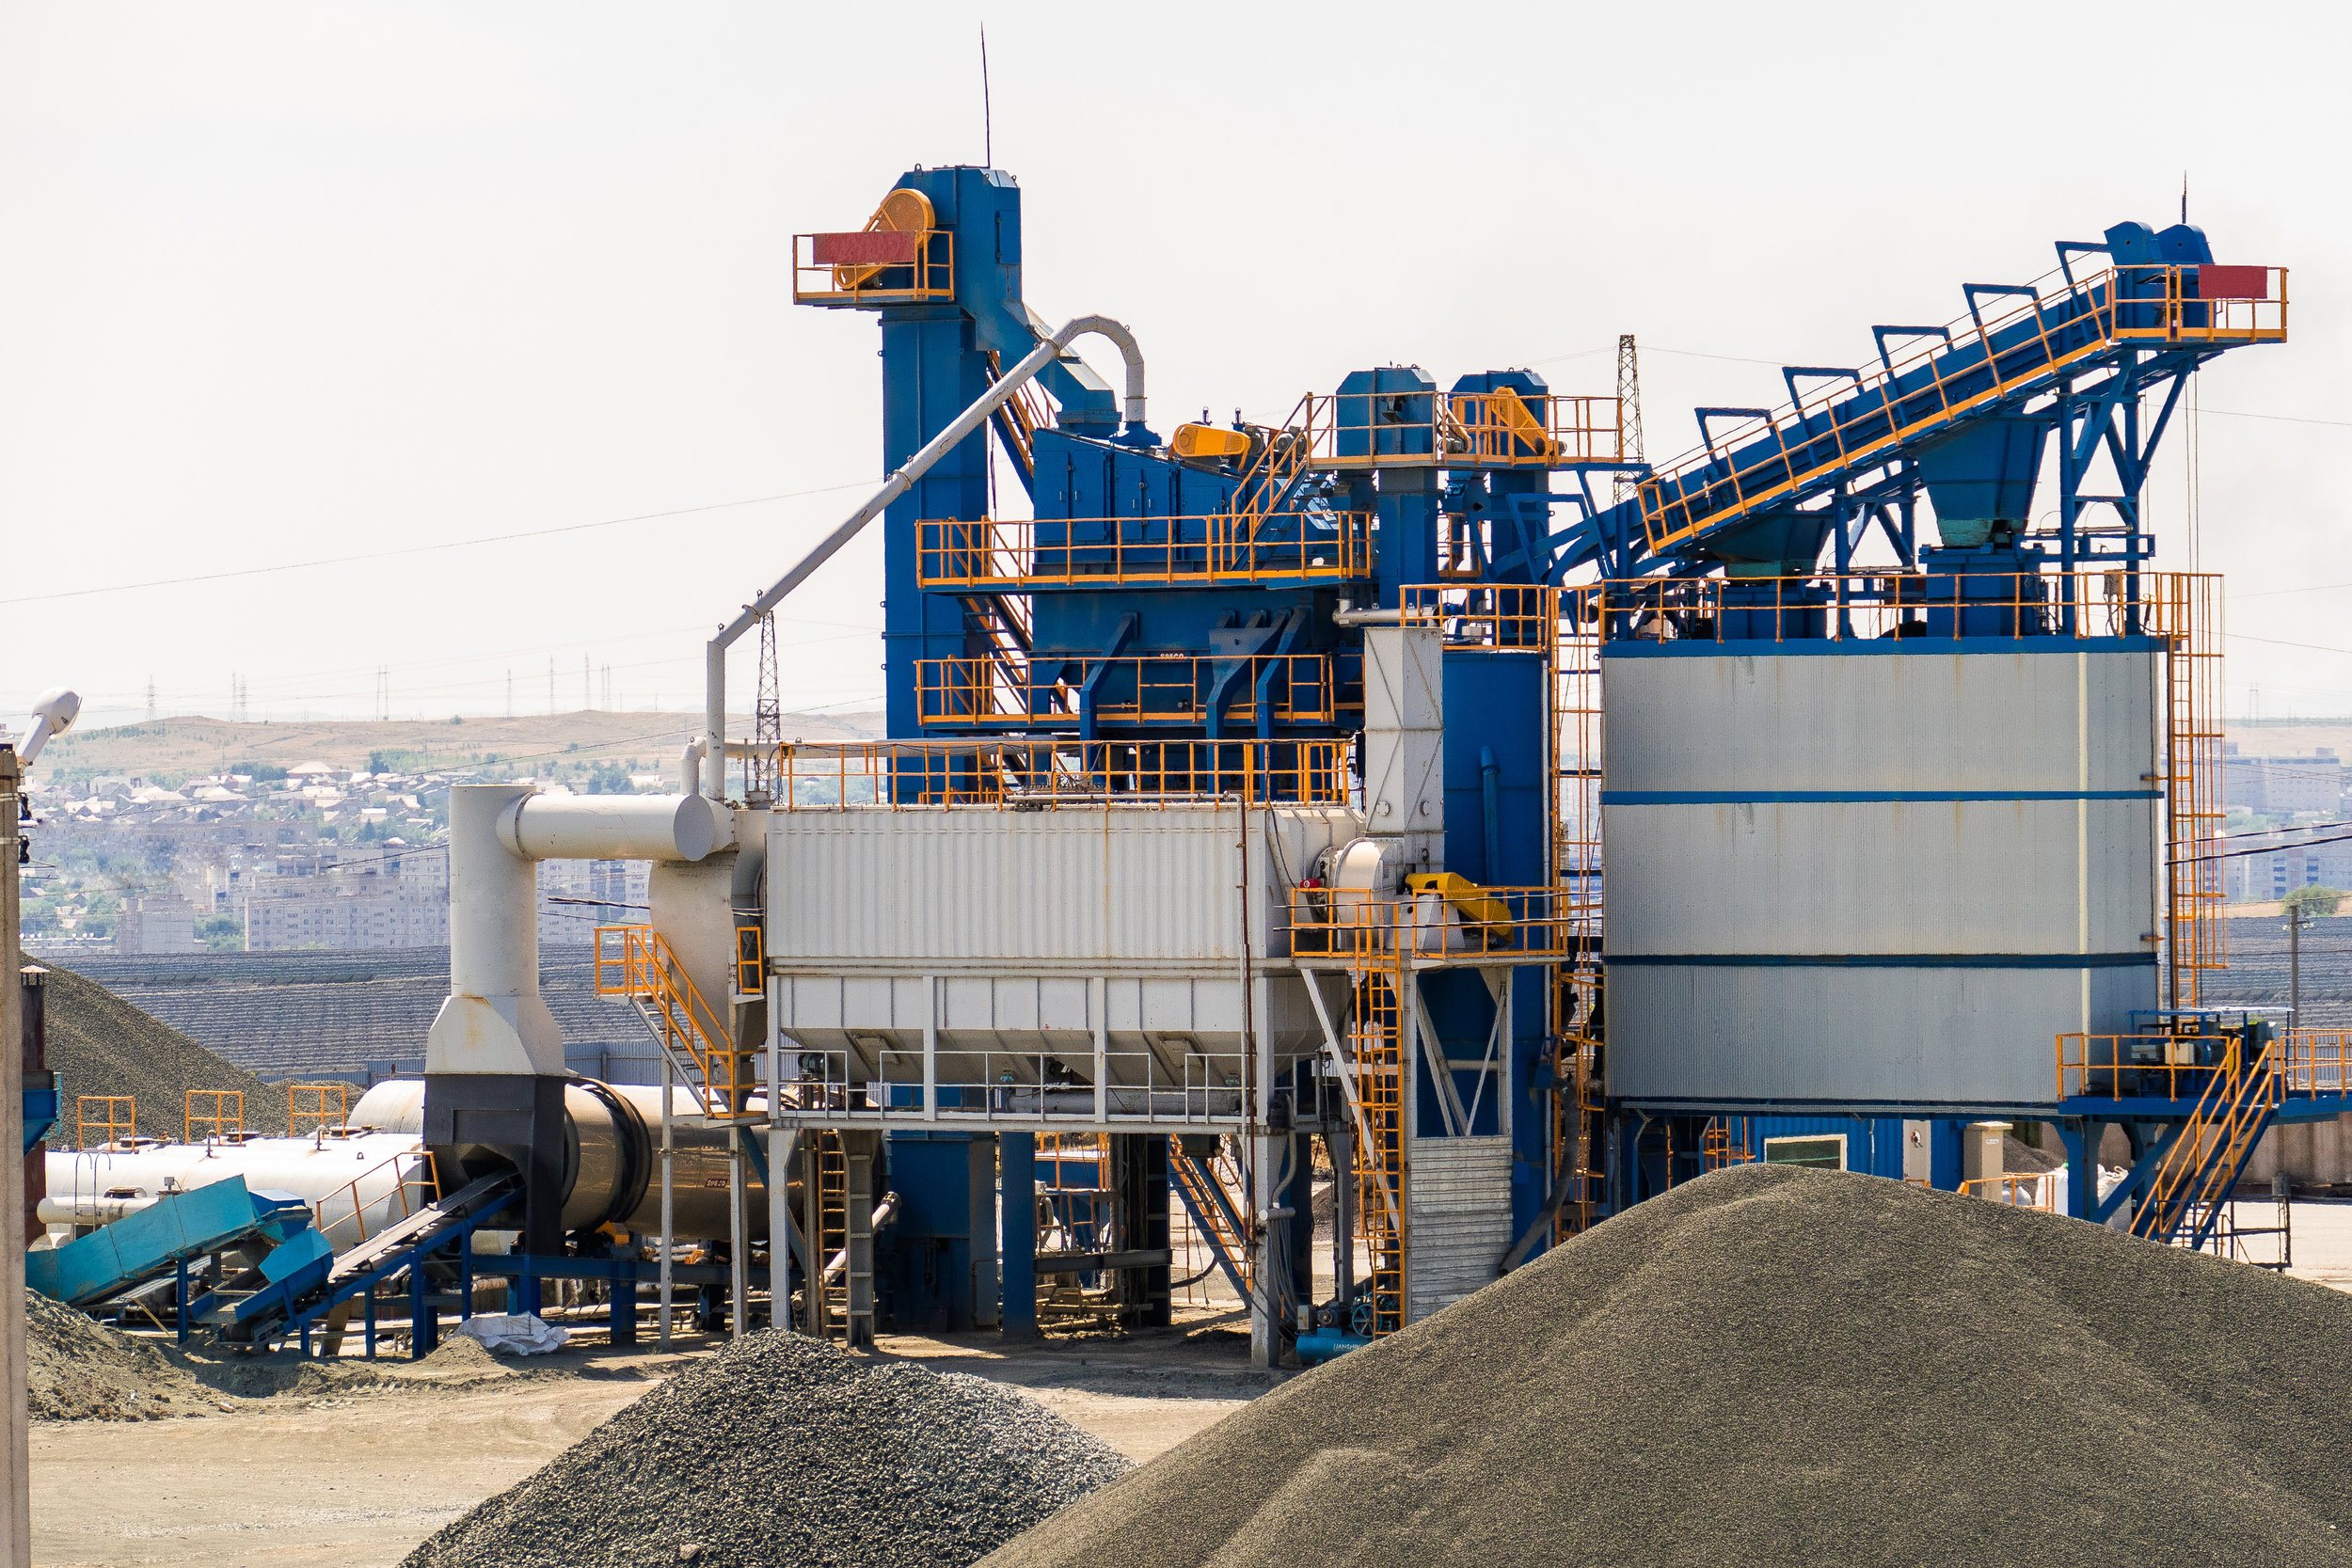 Cement_Plant_GettyImages-824809468.jpg